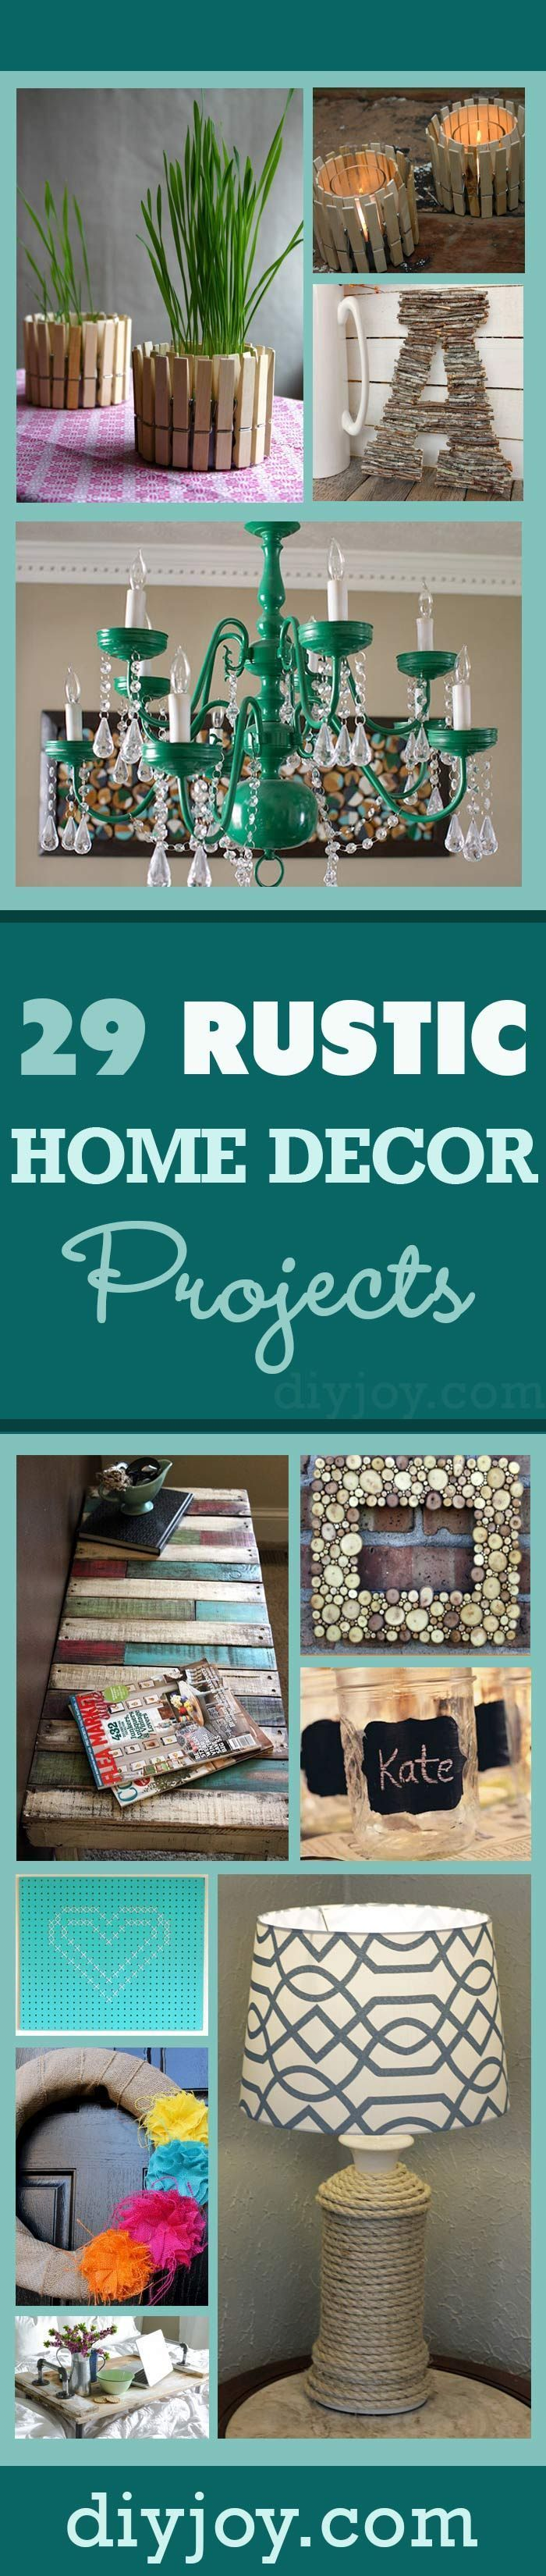 29 rustic diy home decor ideas diy ideas pinterest haus zuhause und deko. Black Bedroom Furniture Sets. Home Design Ideas